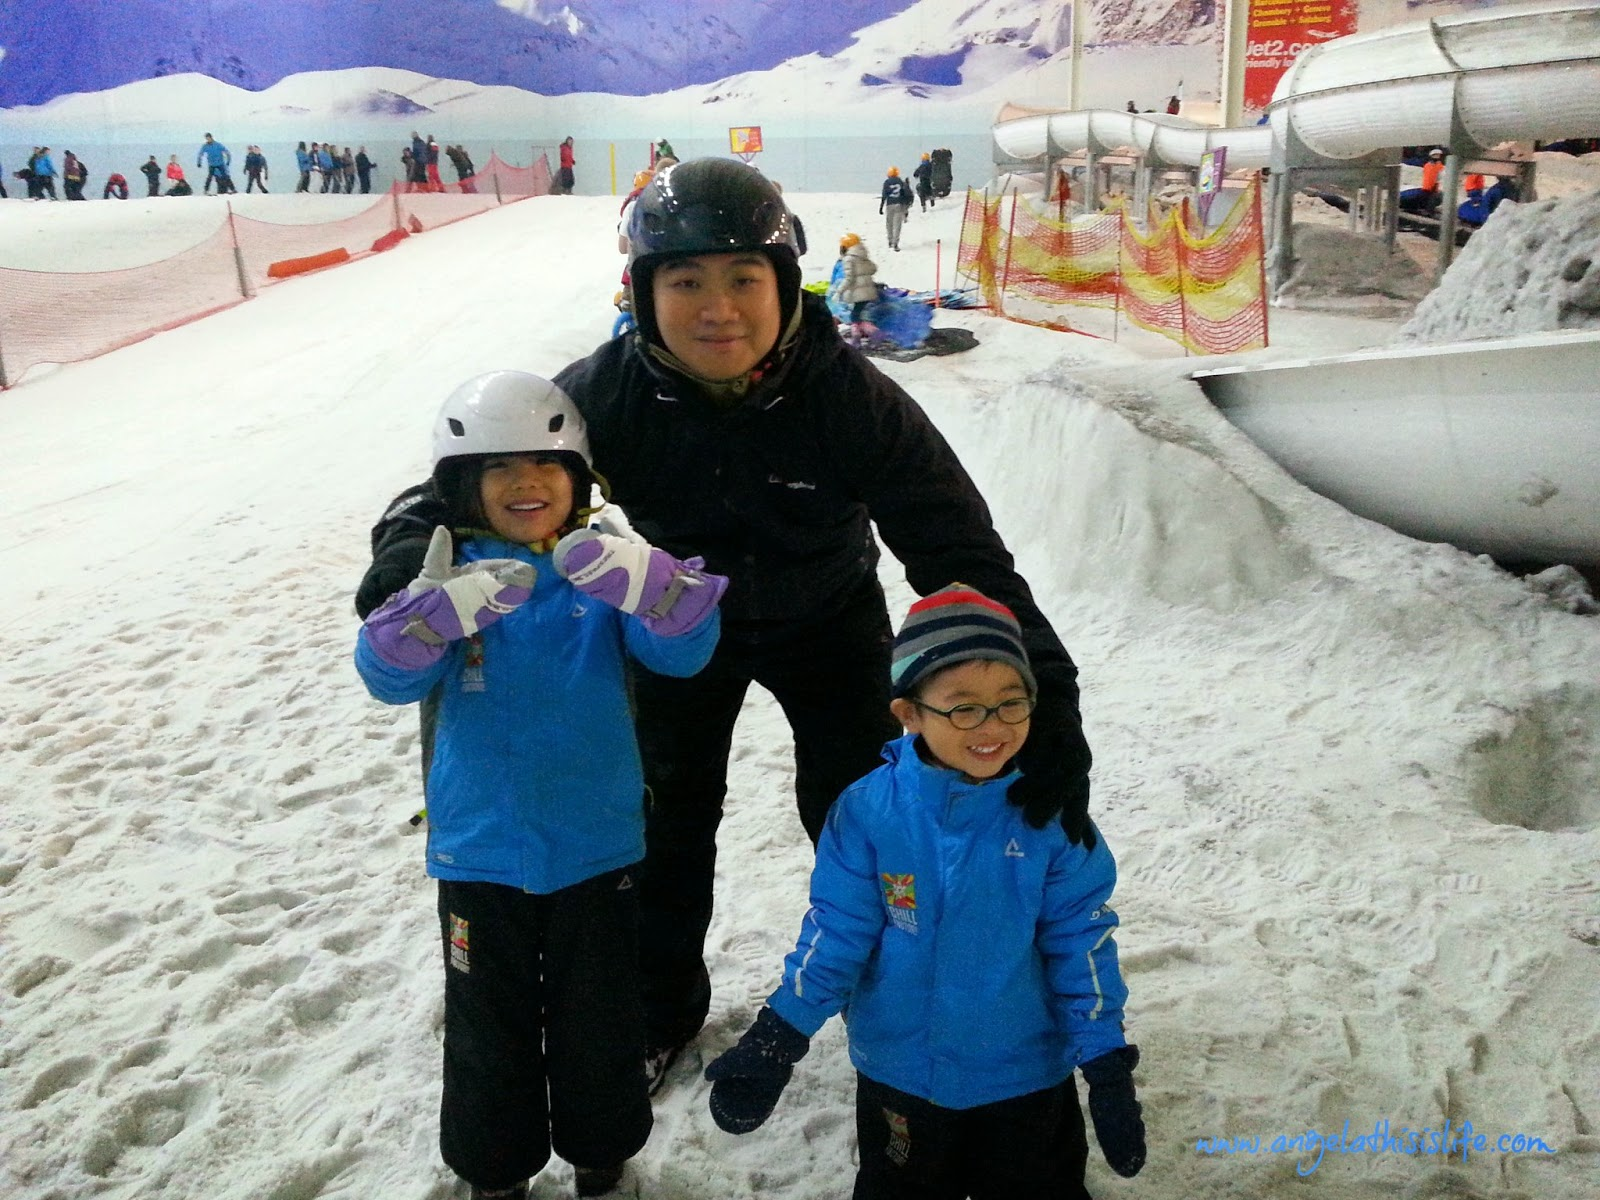 Chill Factor, Indoor Snow, Chilld Factore Mini Moose Land